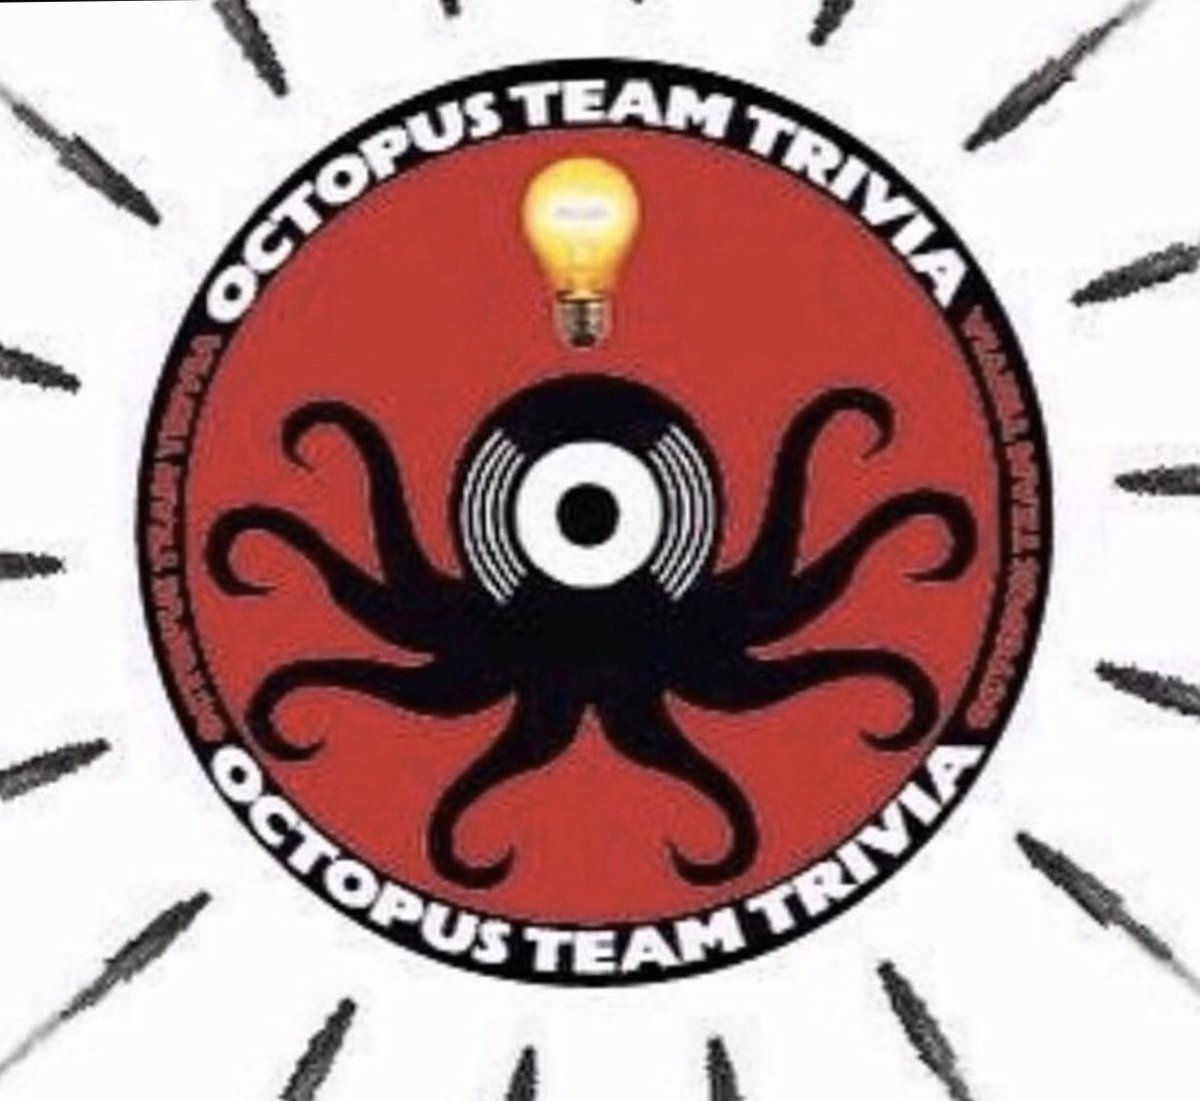 """Octopus Team Trivia returns this Tuesday Jan. 7. The theme is """"Bugs.""""Grab a few friends for some old school no cell phone fun.  The $5 all you care to drink PBR deal runs from 7-9. Join us! #octopuscollegehill #octopusteamtrivia"""